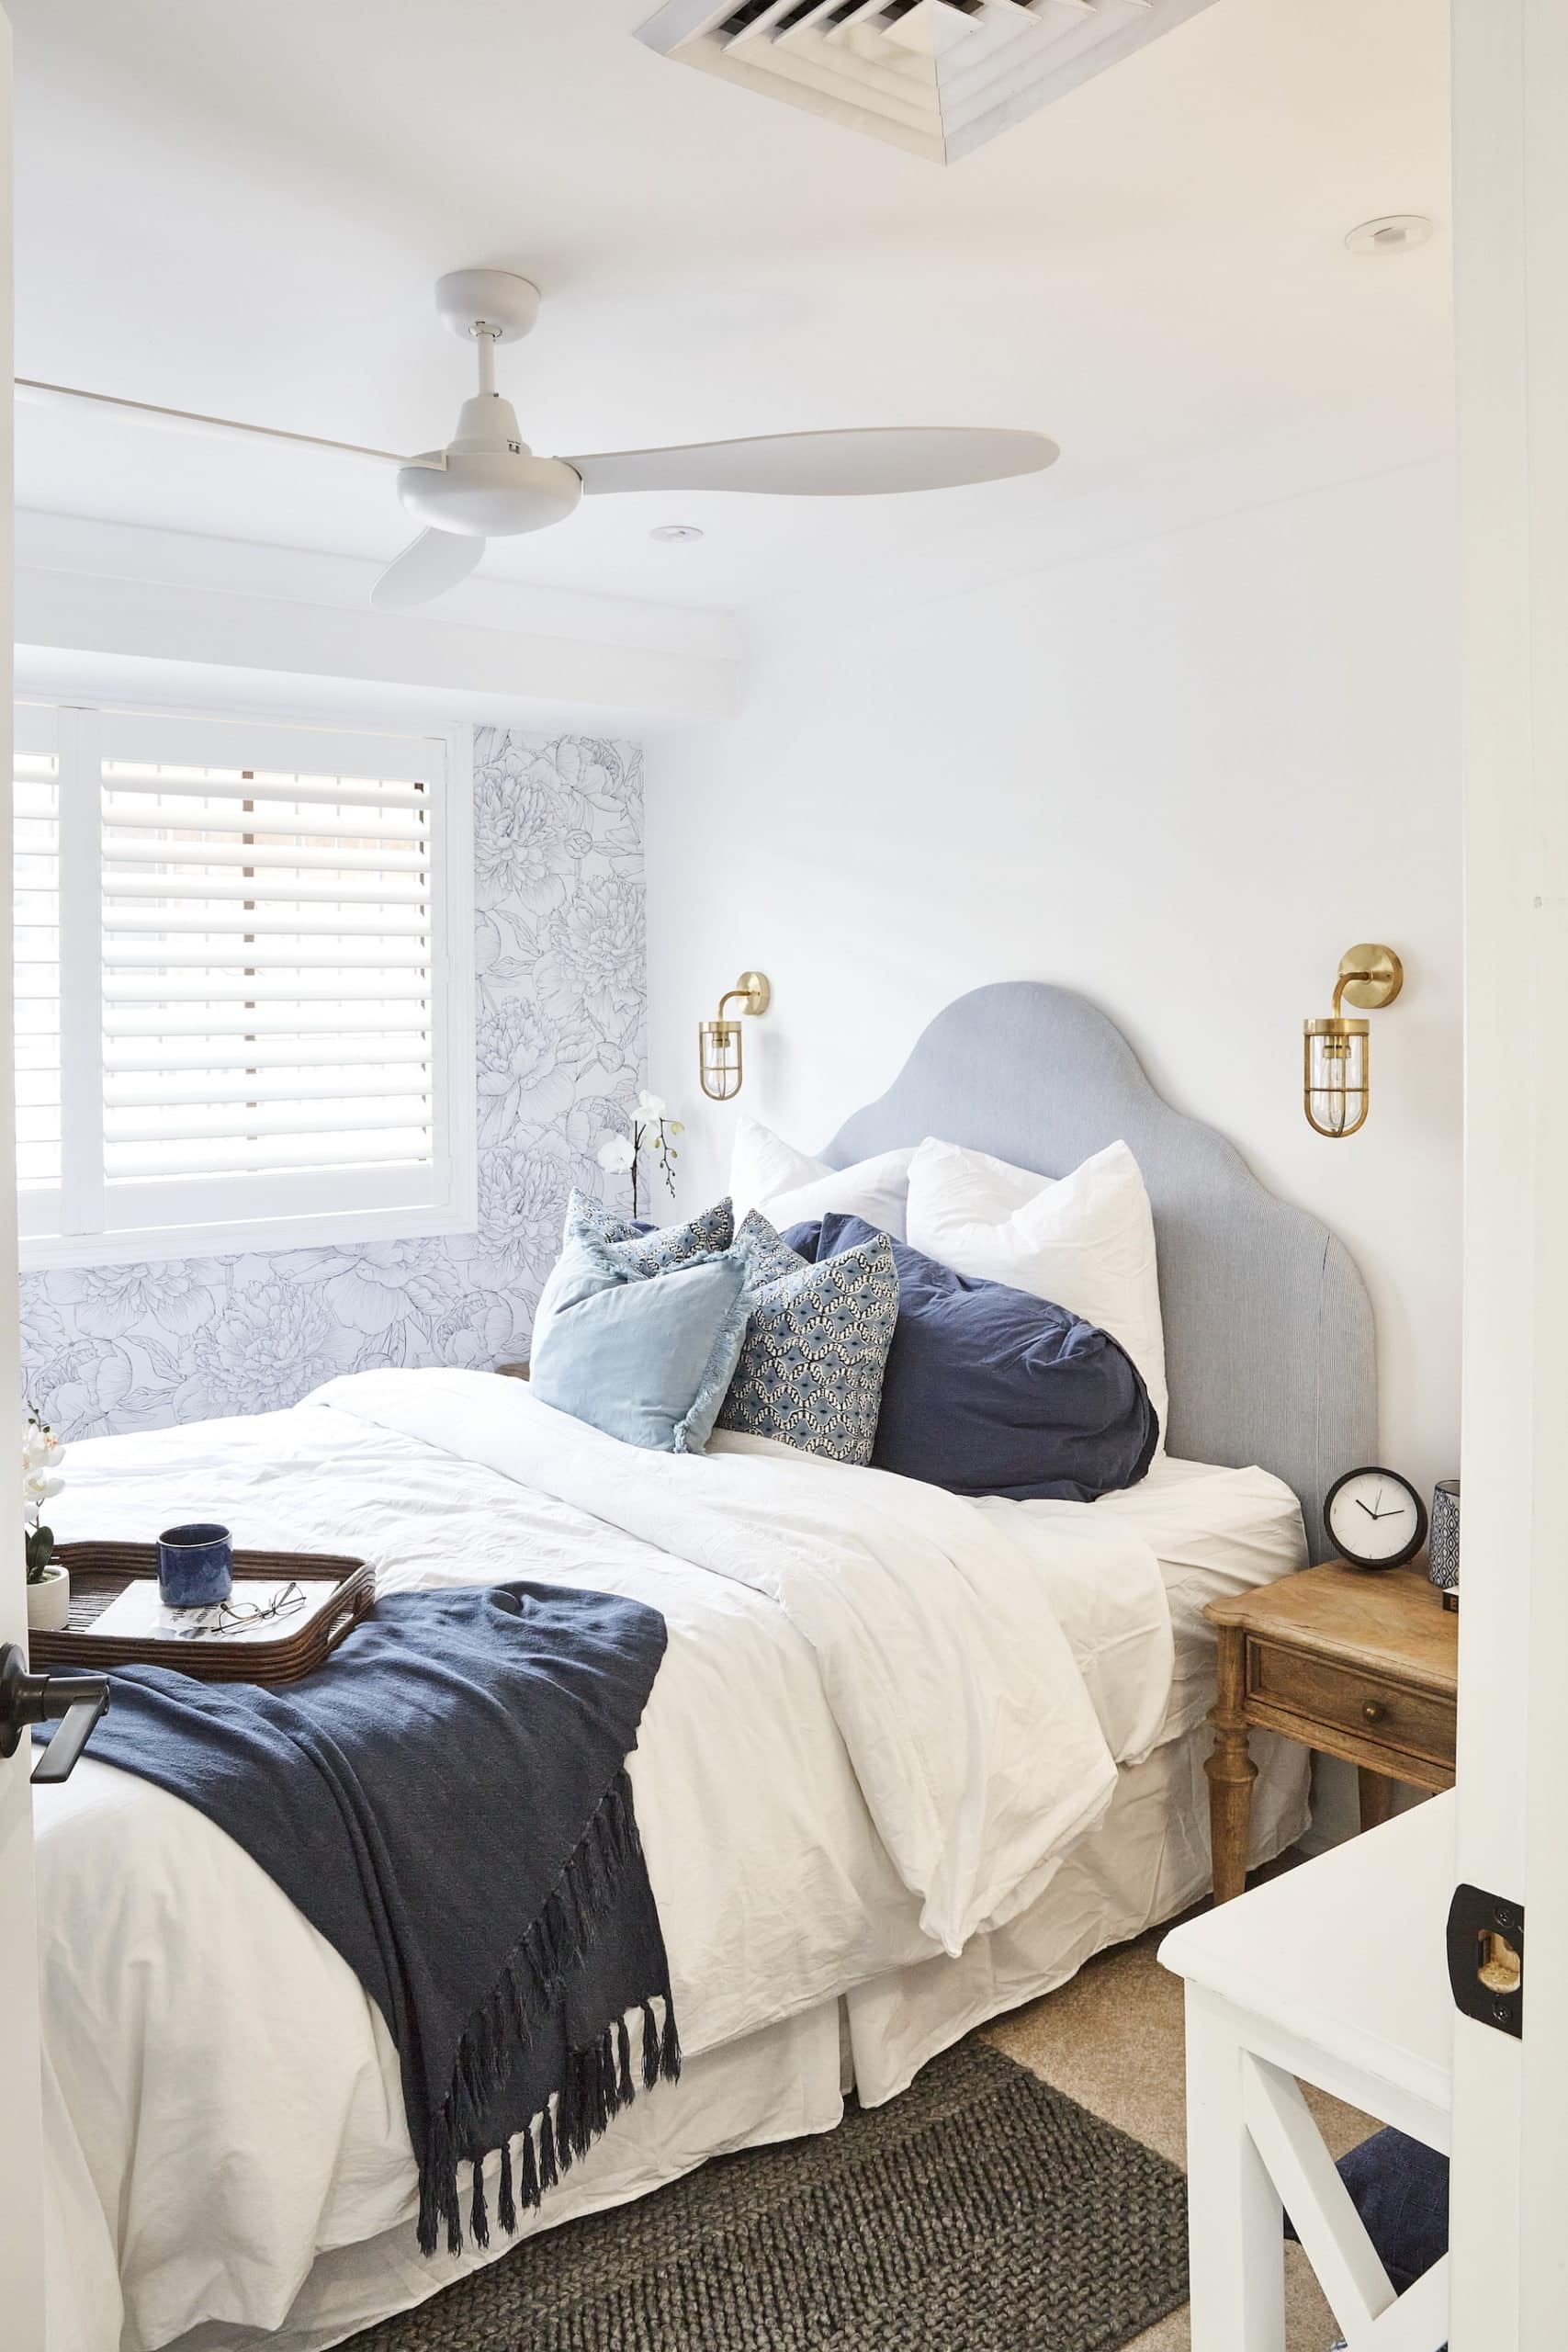 house rules 2020 lenore hamptons bedroom with black and white floral wallpaper and grey headboard